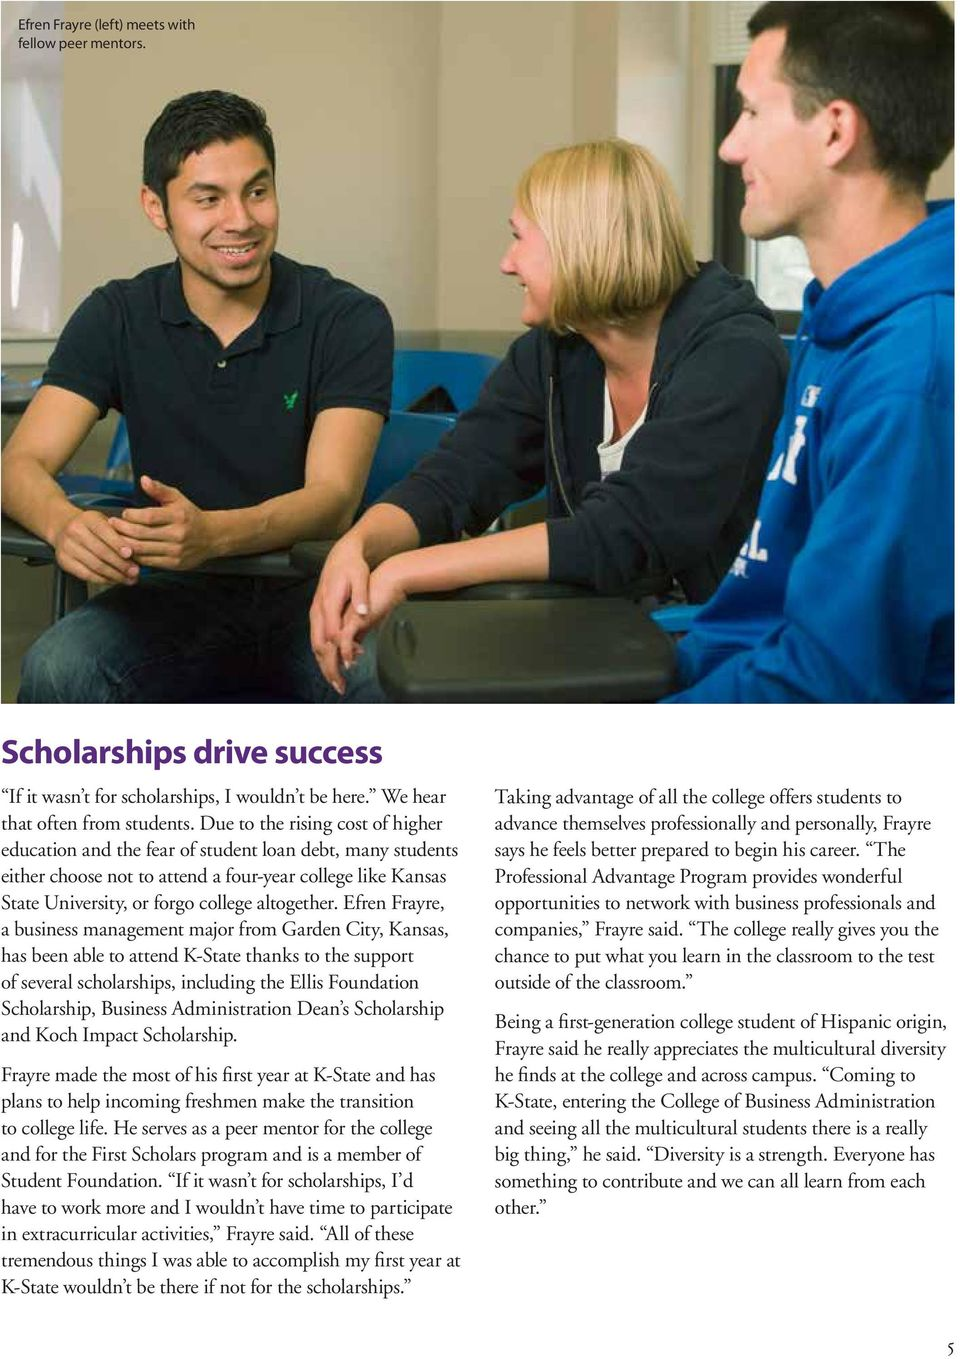 Efren Frayre, a business management major from Garden City, Kansas, has been able to attend K-State thanks to the support of several scholarships, including the Ellis Foundation Scholarship, Business